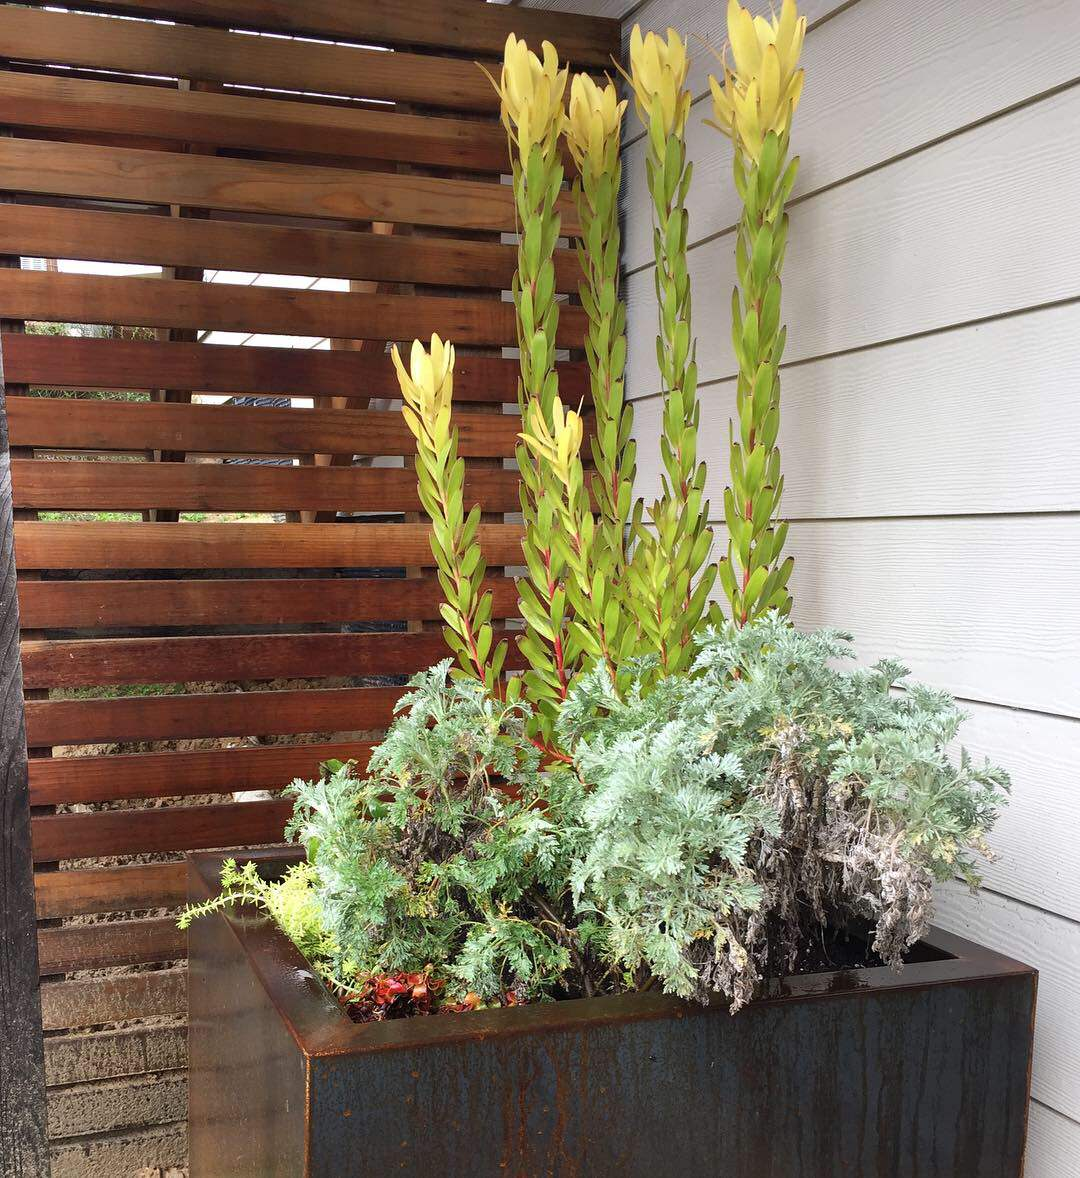 Corten steel planters by Veradek are awesome! A nice price and well made. They rust to a beautiful, varied patina that along with the straight lines of the steel creates a nice mix of organic and geom